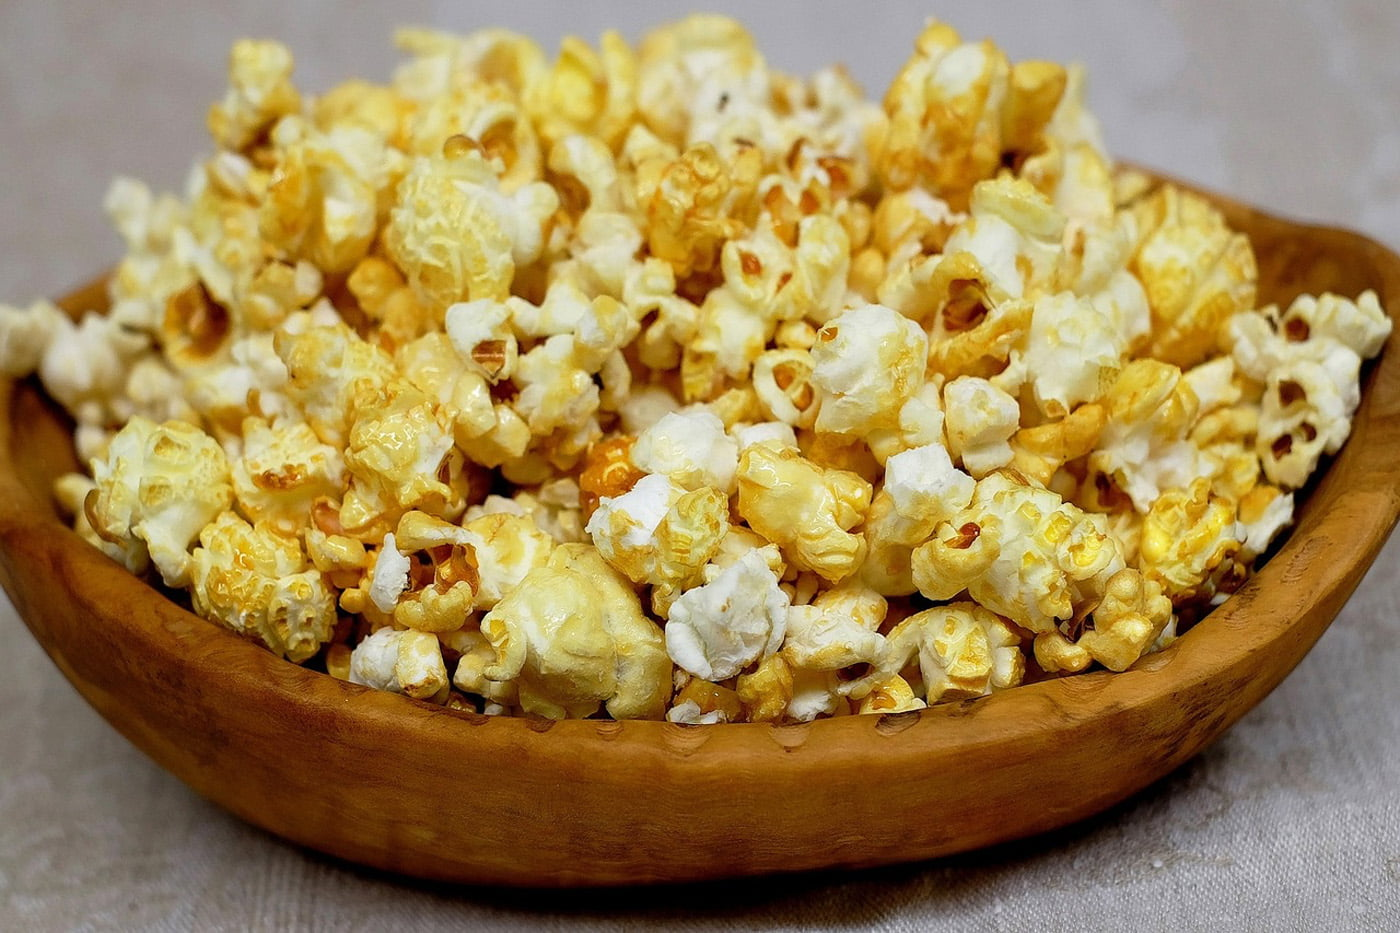 Honey & Hot Sauce Popcorn Crunch